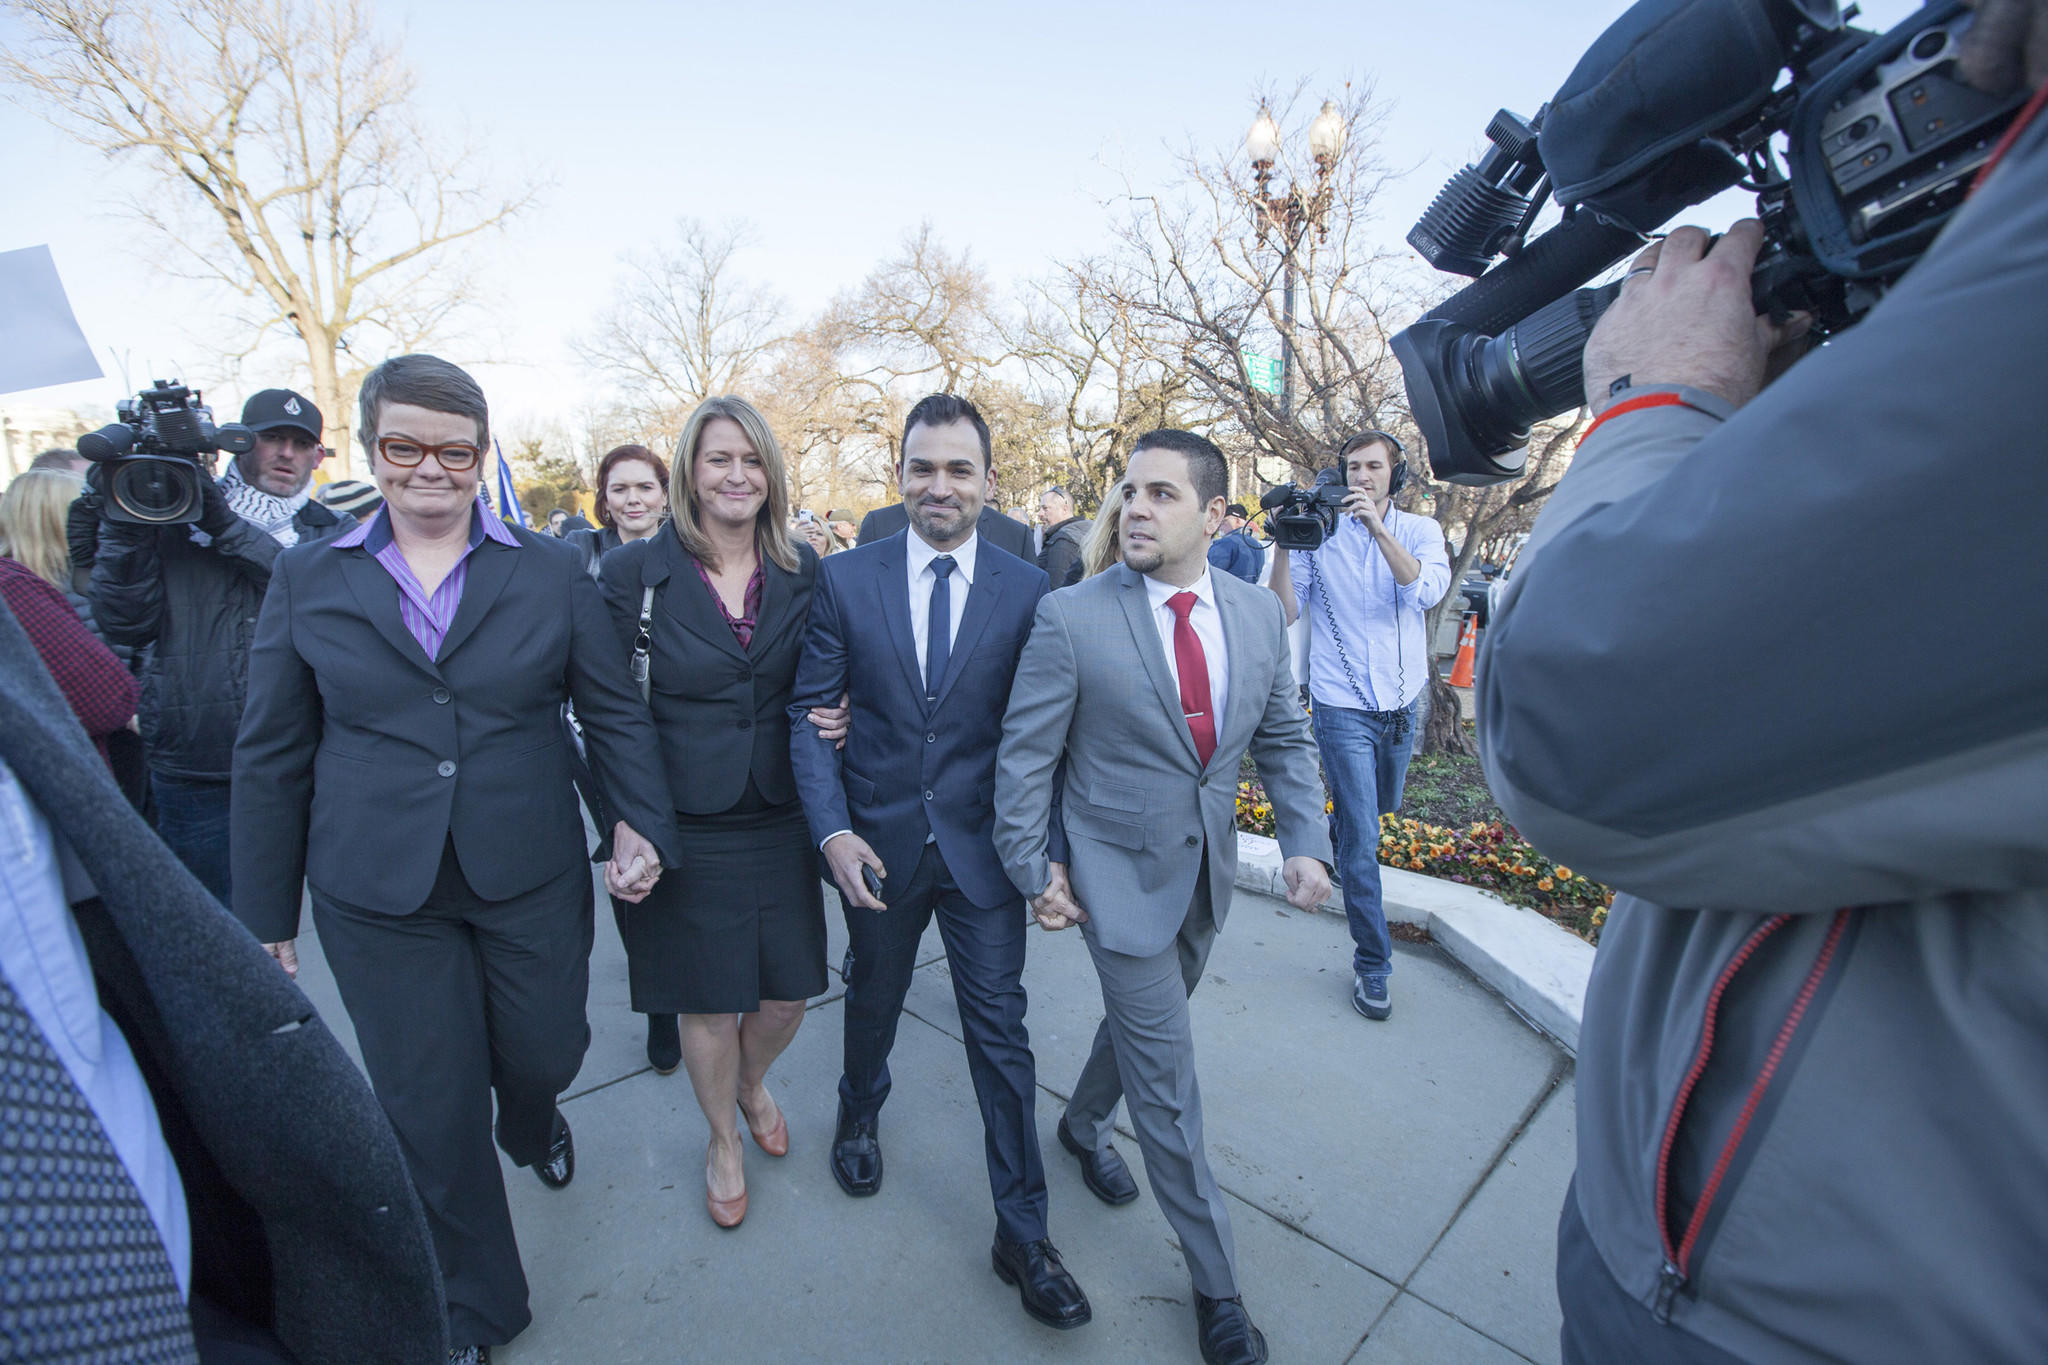 (L to R): Kris Perry, Sandy Stier, Jeff Zarrilla and Paul Katami arriving for court. Photo Courtesy of AFER/Diana Walker/HBO